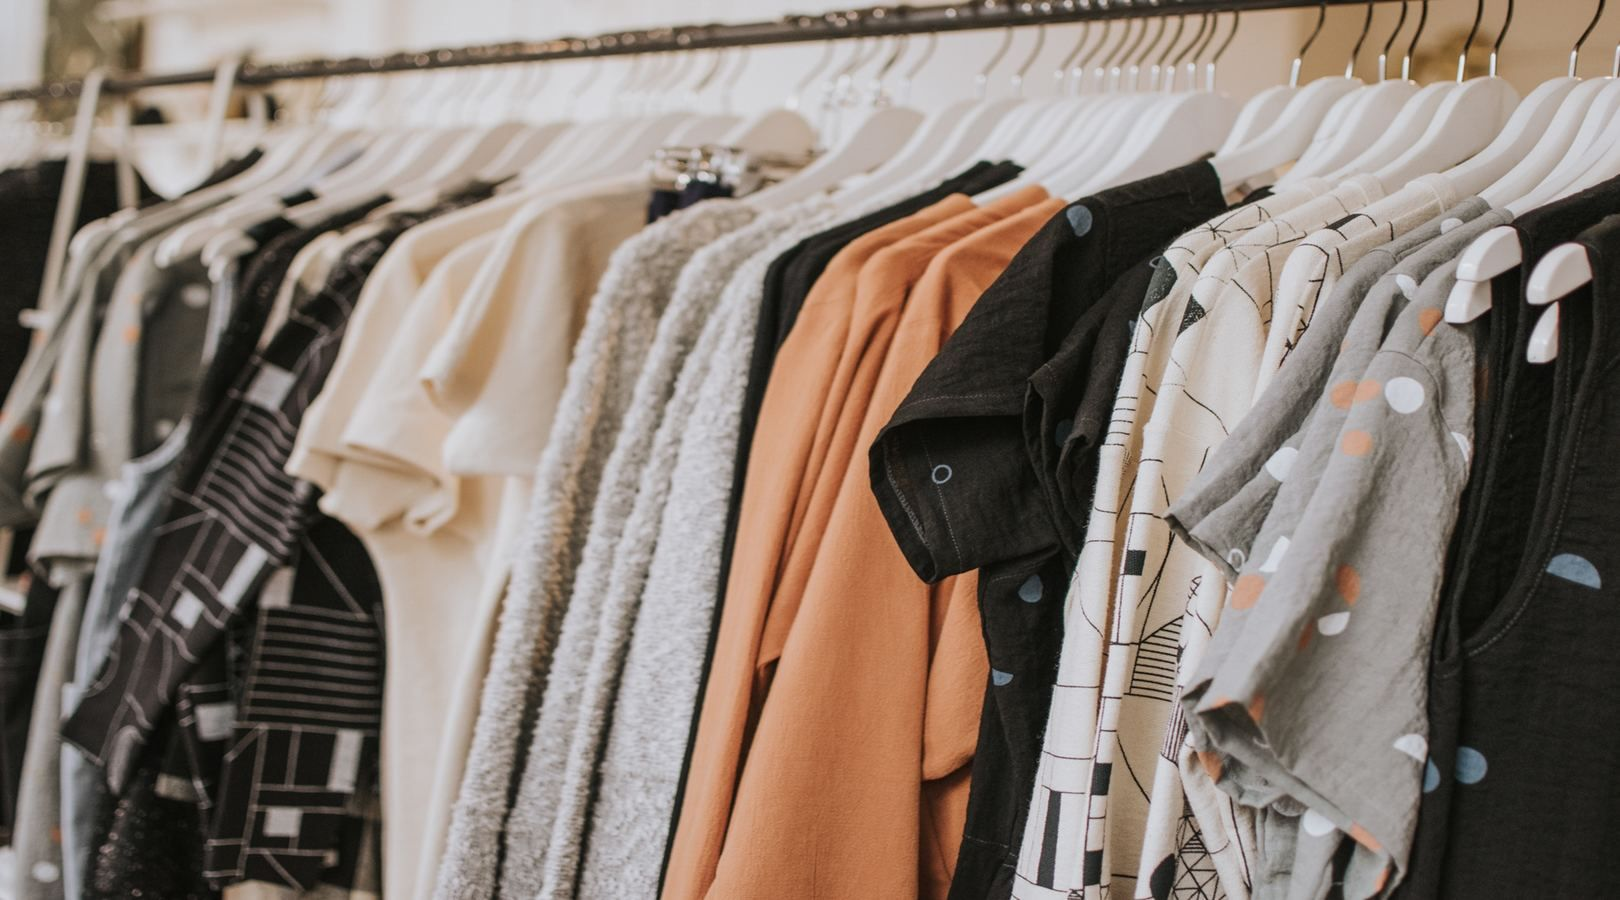 Cheapest Way to Ship Clothes: How to Mail Apparel